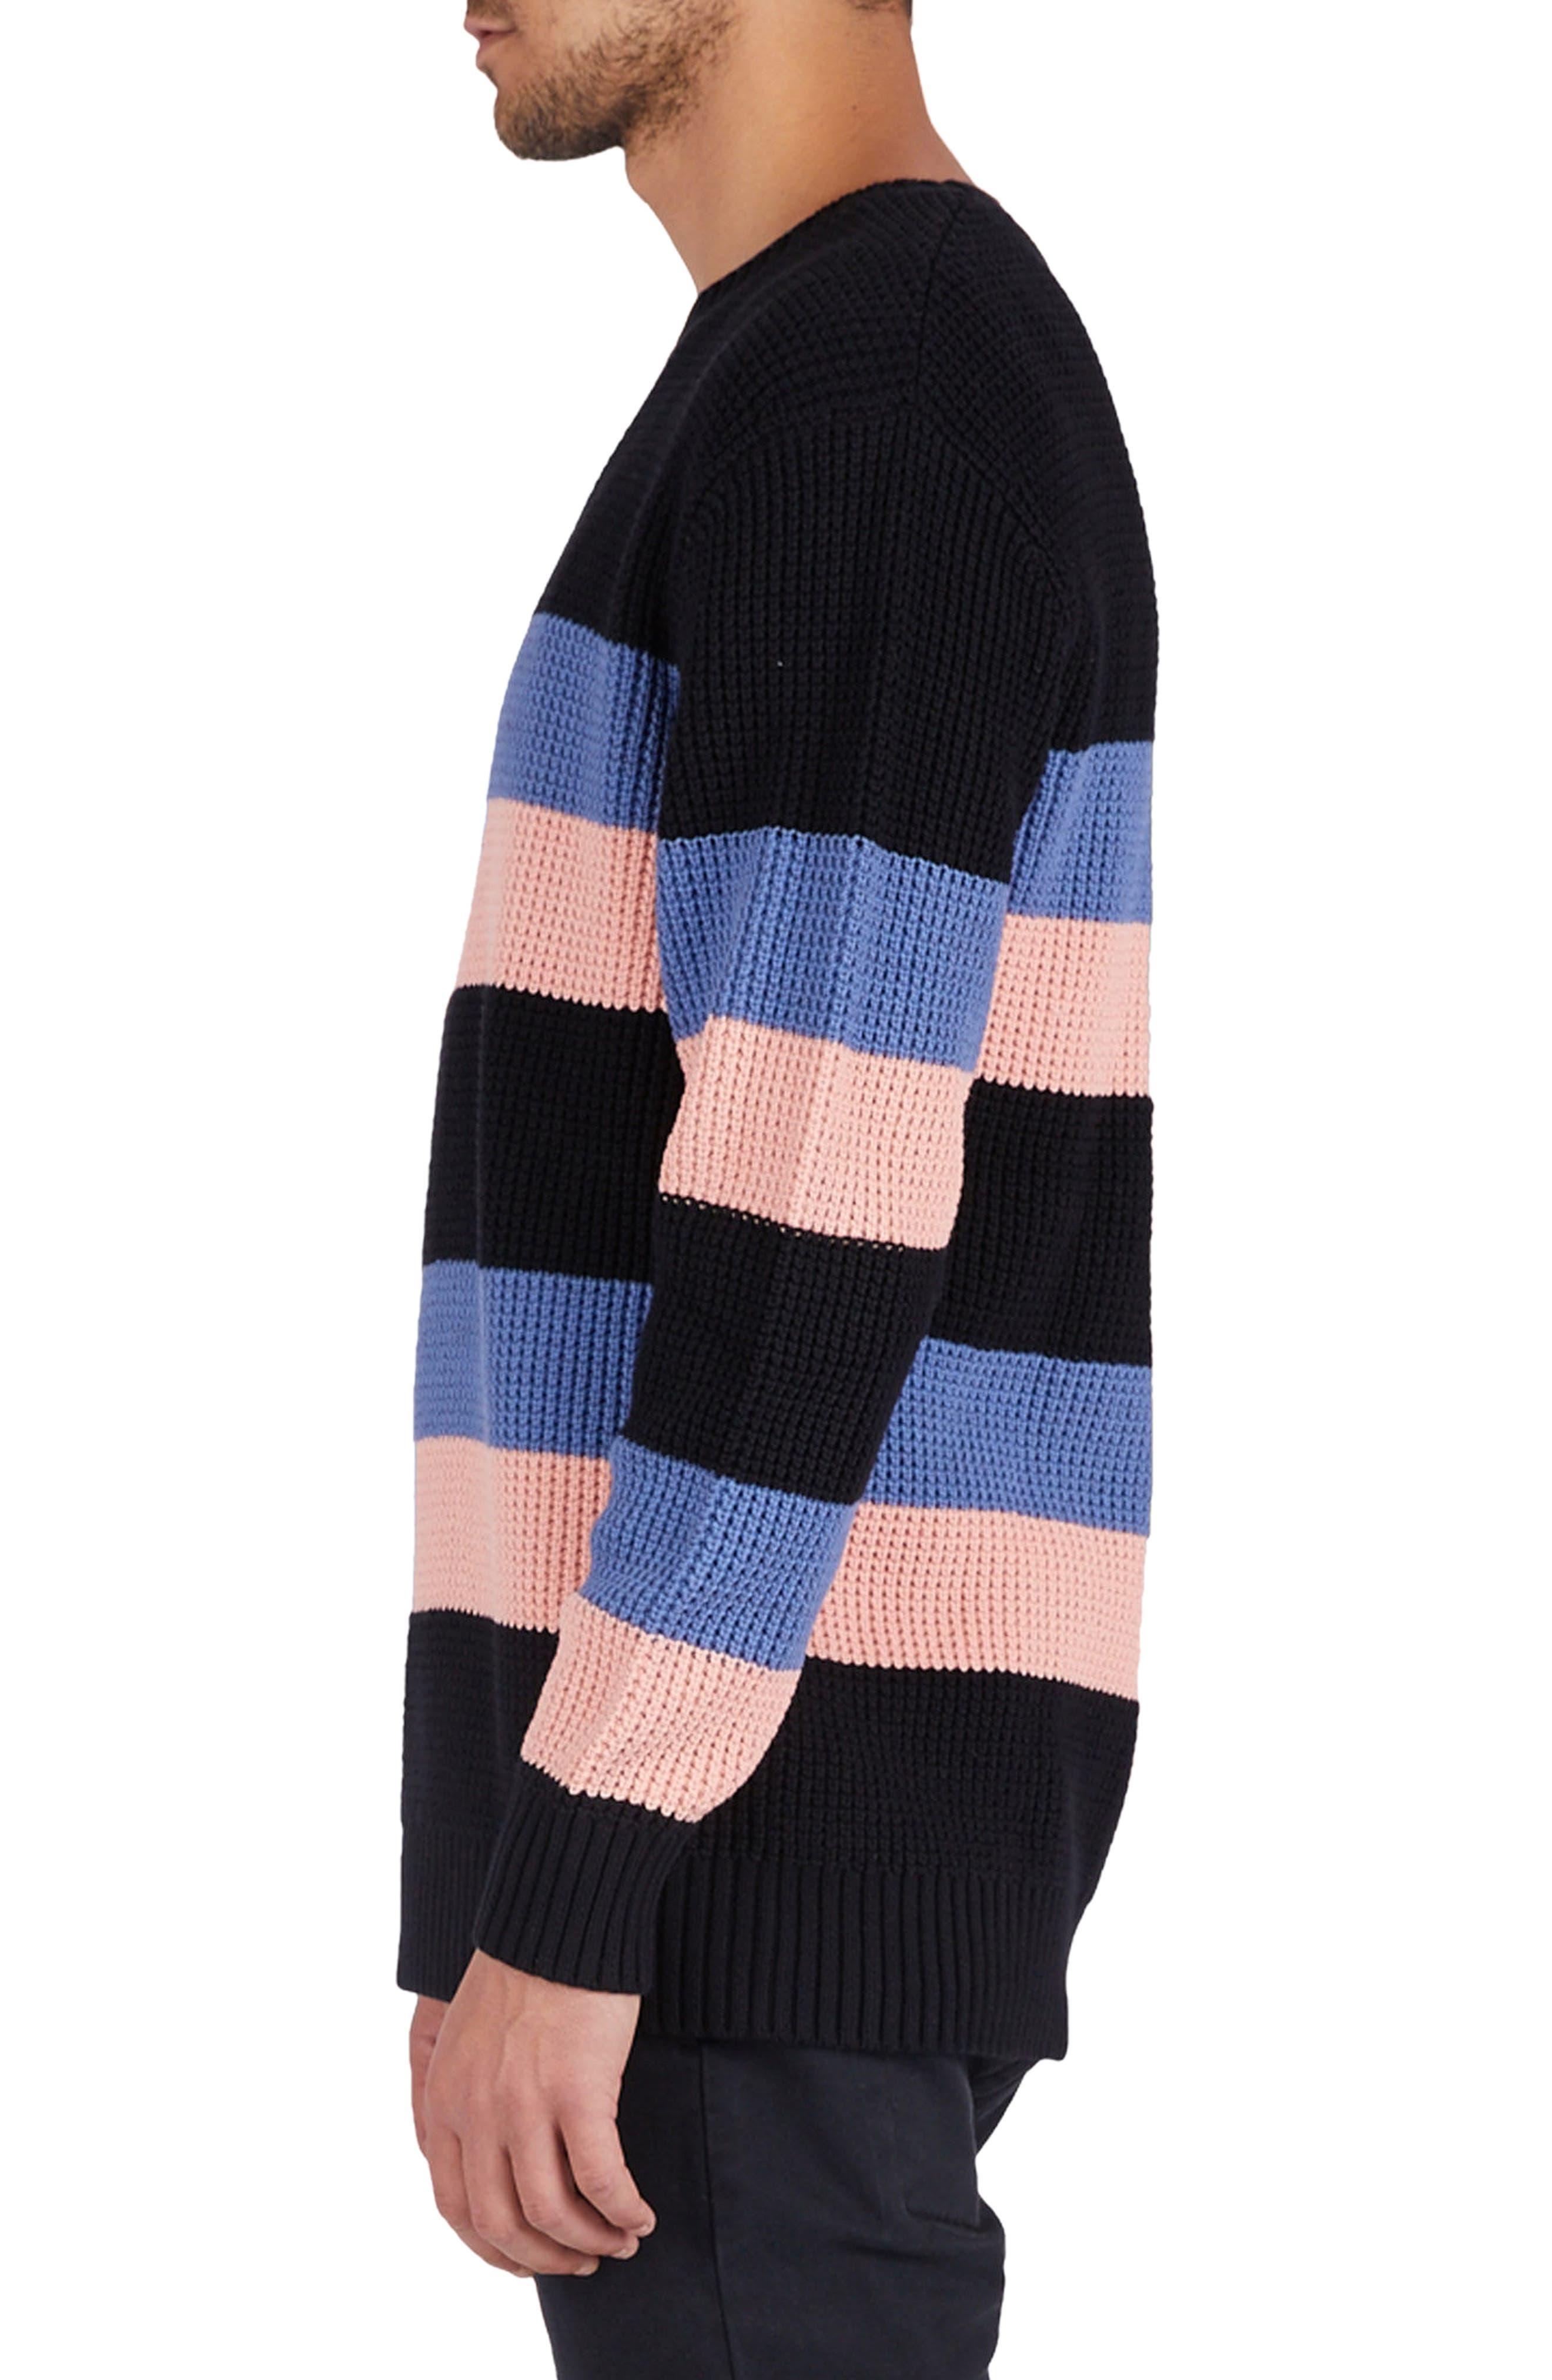 Rugby Stripe Sweater,                             Alternate thumbnail 3, color,                             001